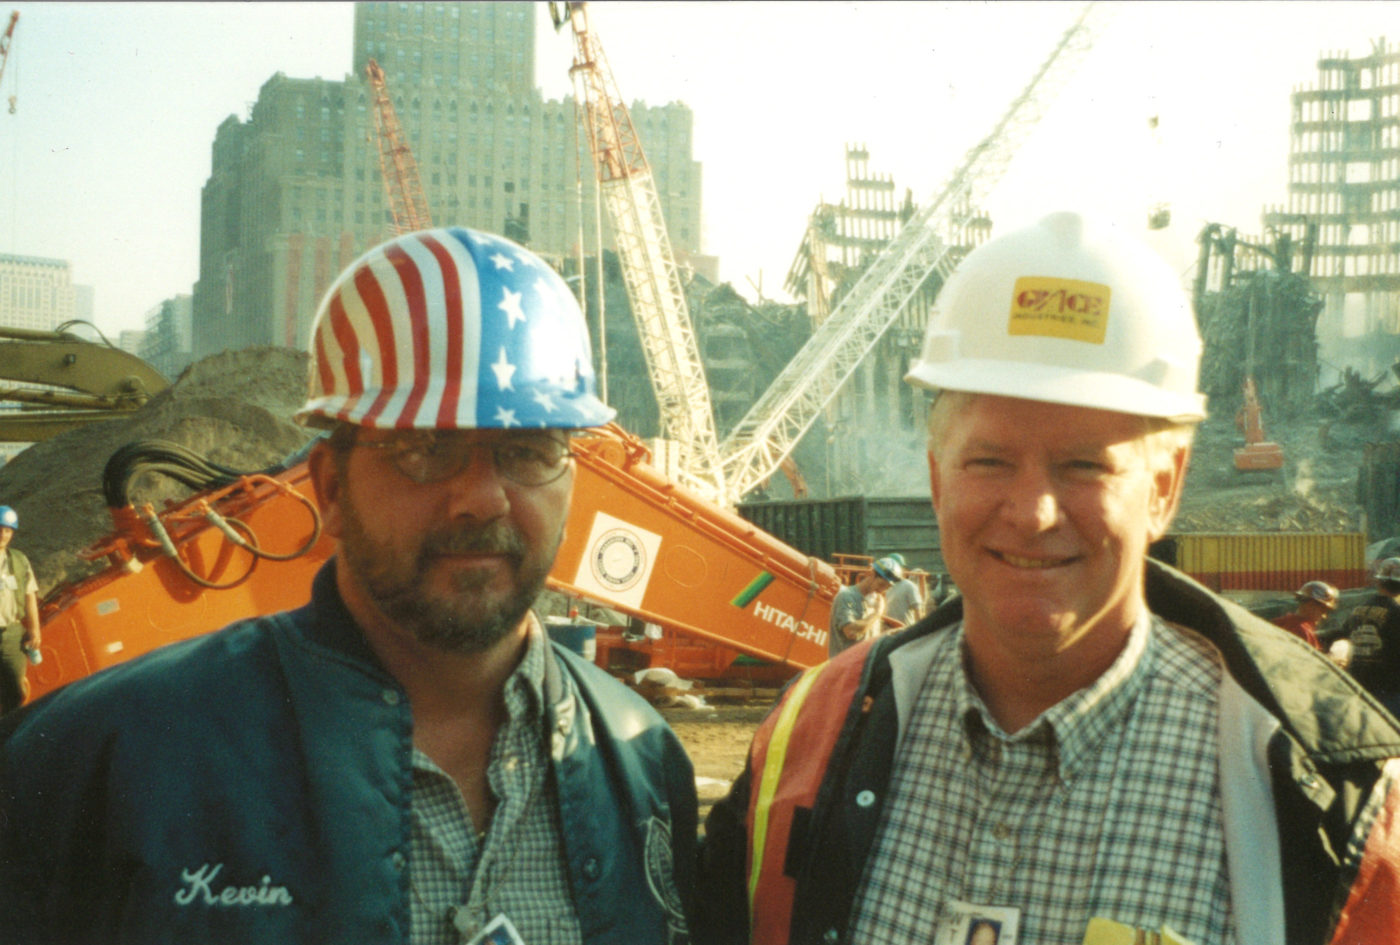 Two Workers Take Photo at Ground Zero, One is Wearing an American Flag Hat